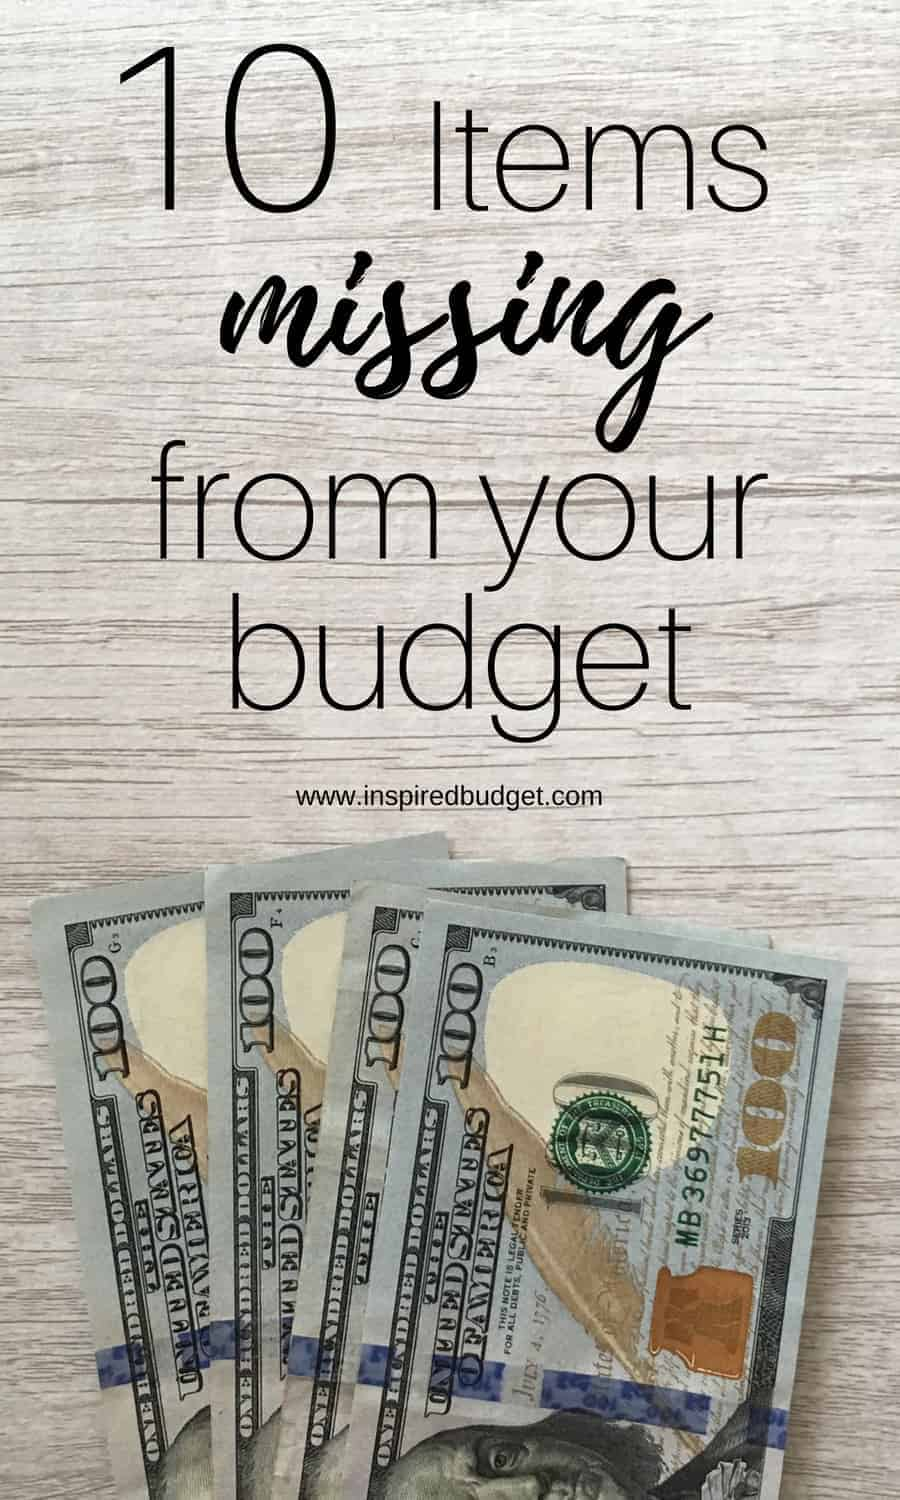 10 items missing from your budget image 2